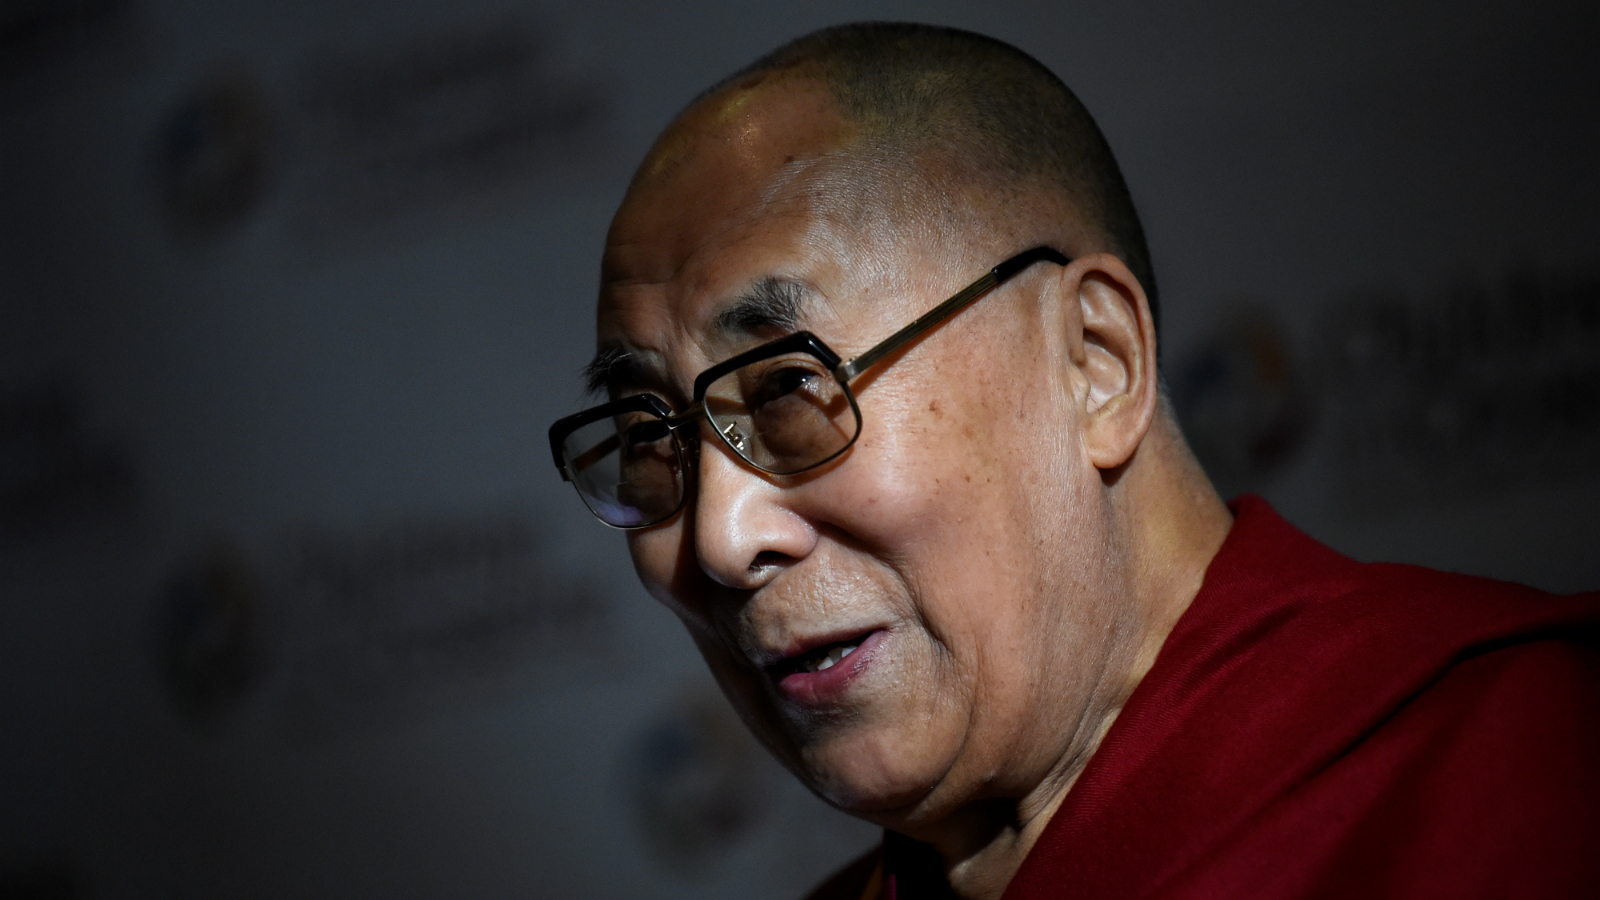 Tibetan spiritual leader the Dalai Lama, Patron of Children in Crossfire, speaks during a press conference in Londonderry, Northern Ireland September 11, 2017.